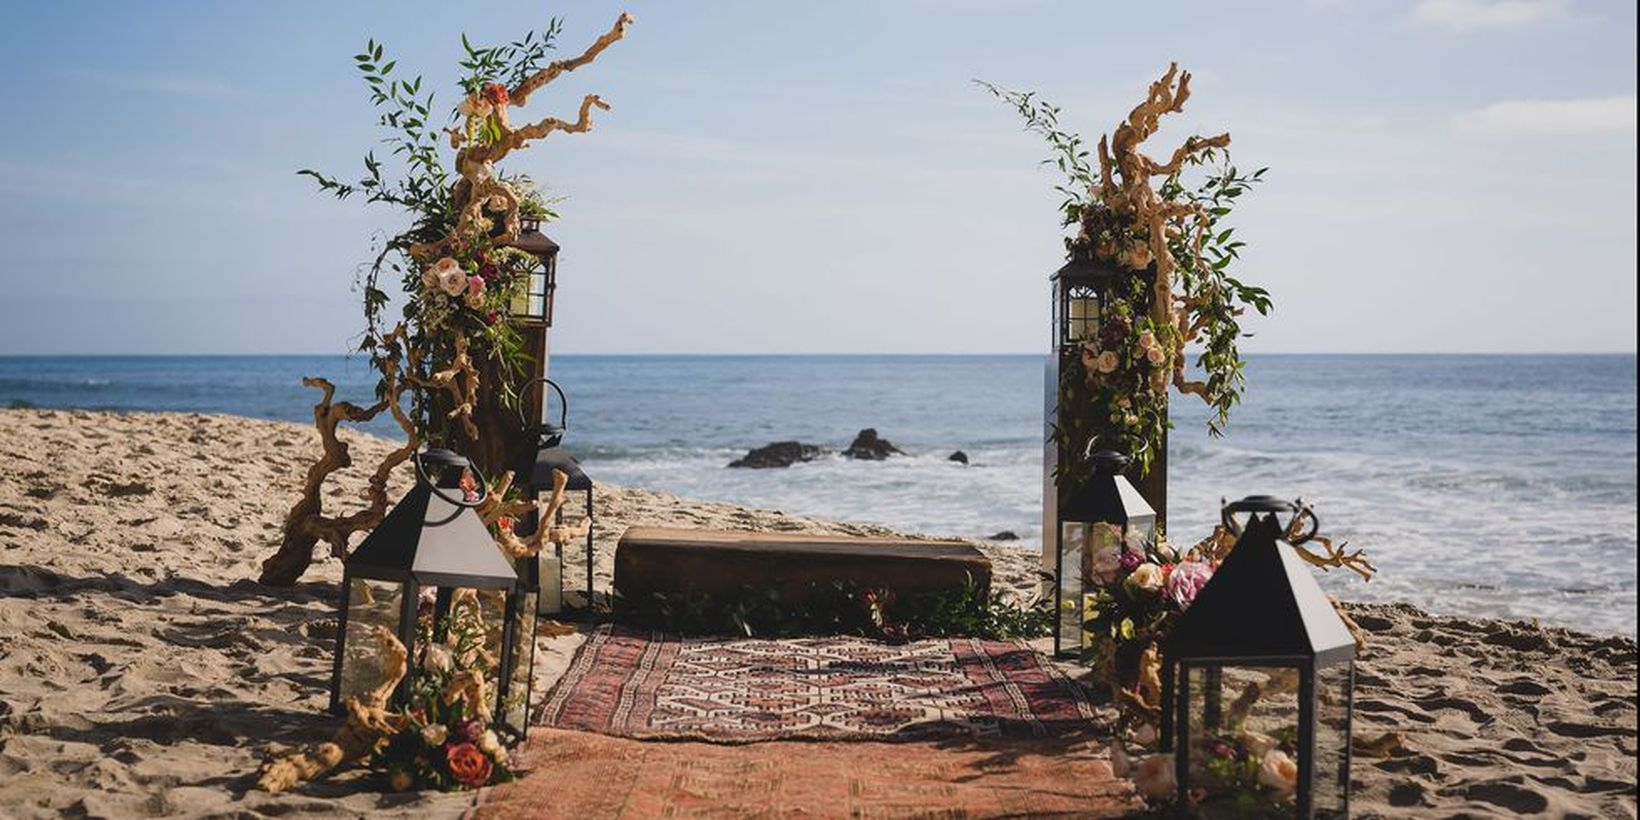 An awesome outdoor venue for fall wedding with surf and sand resort on laguna beach will deliver a gorgeous laid-back affair you must try.